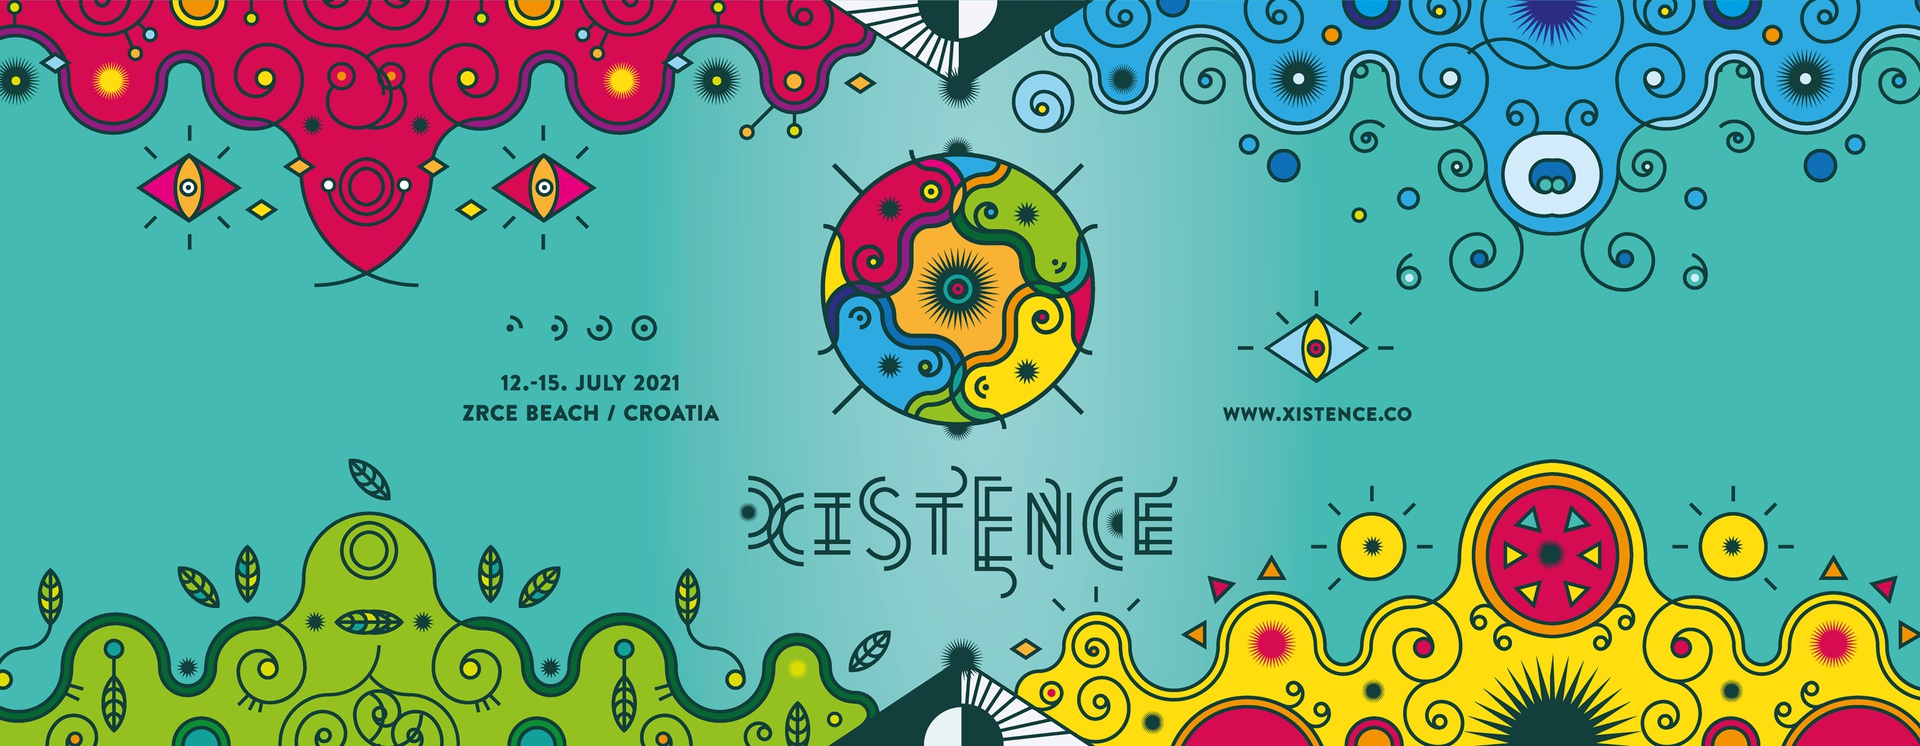 Event: Xistence 2021